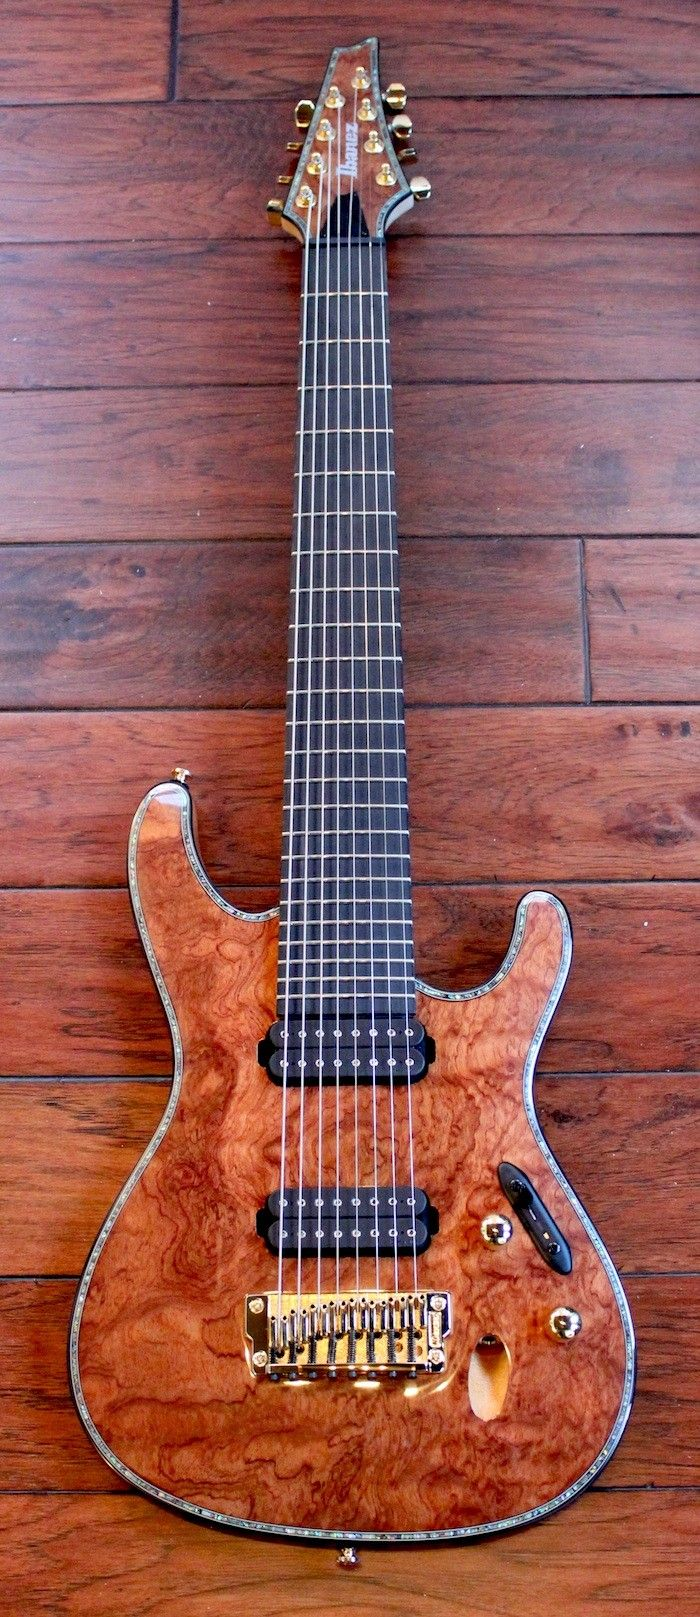 Ibanez SIX28FD-BGNT Iron Label 8-String Guitar DiMarzio Pickups (Natural Bubbinga)